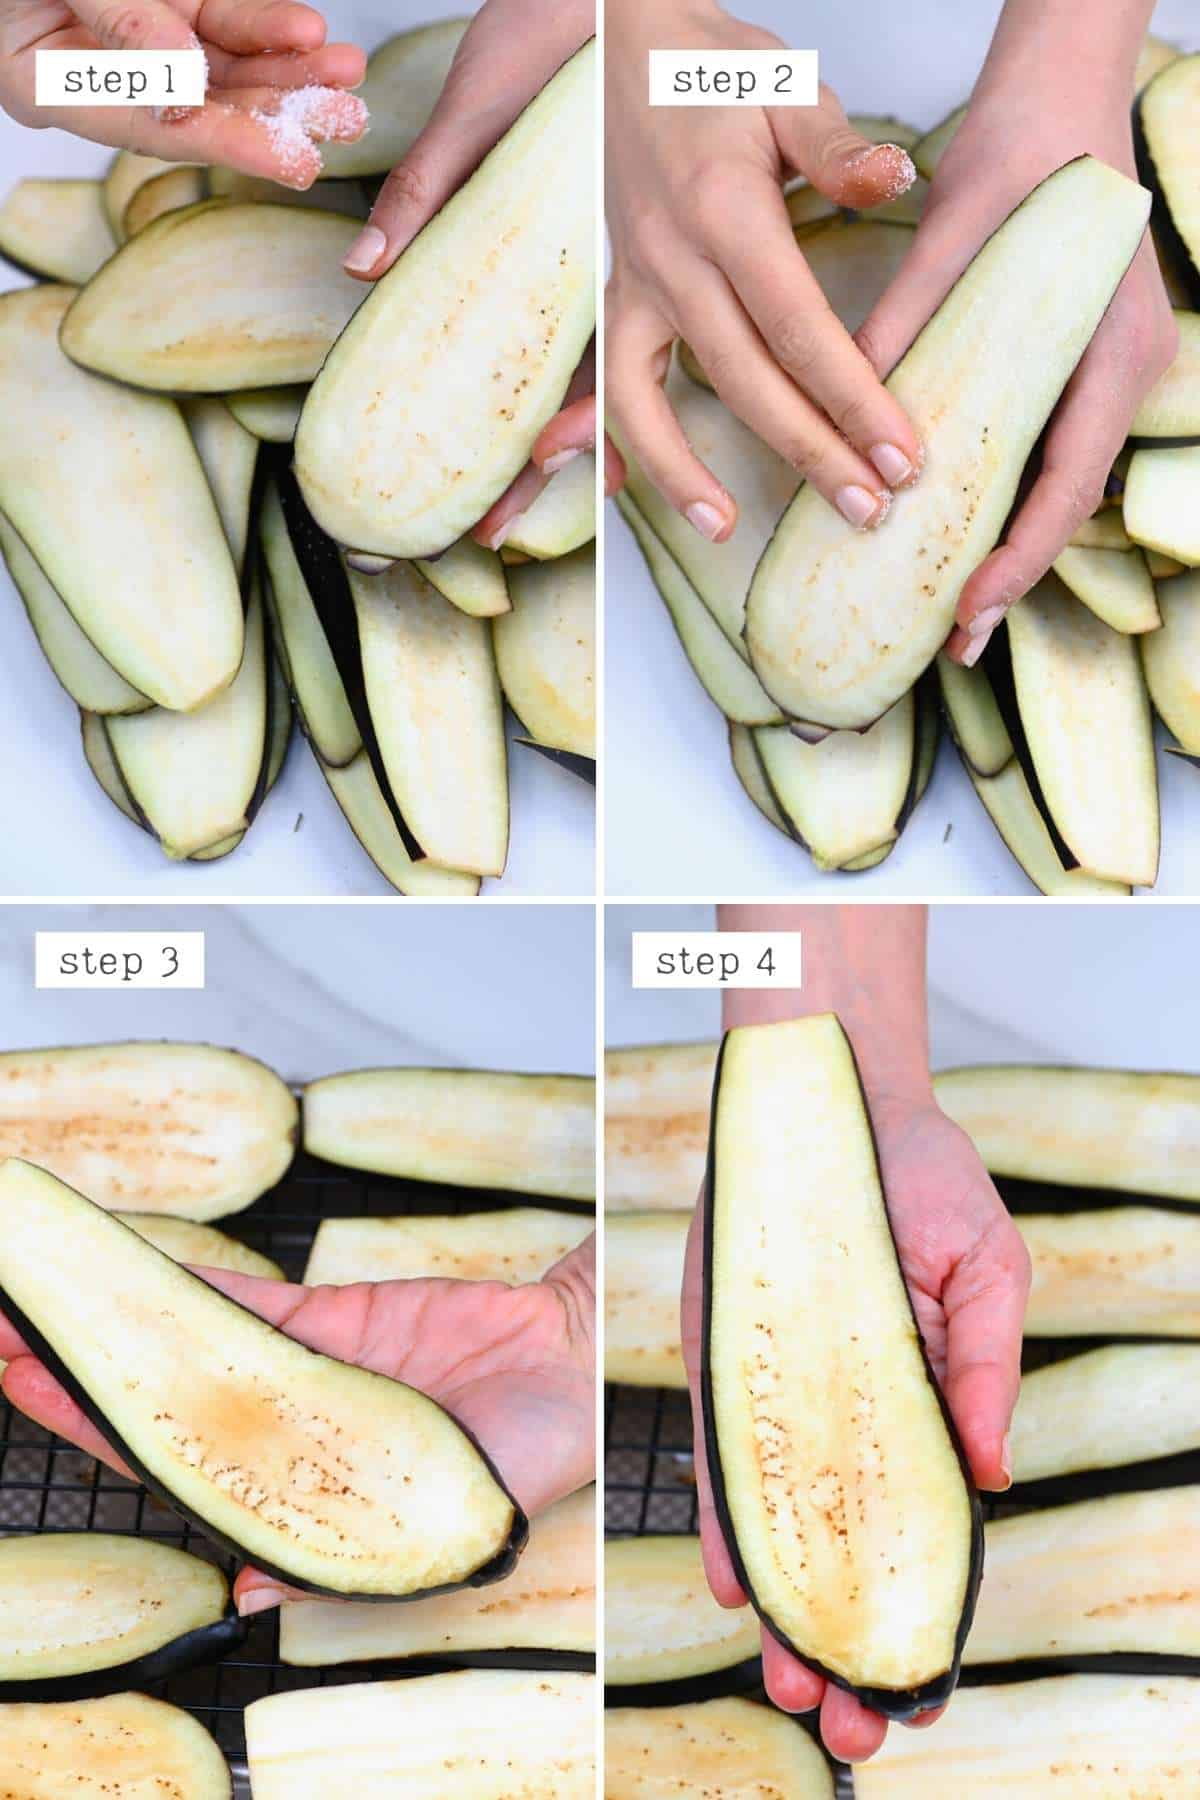 Removing excess water from eggplant slices